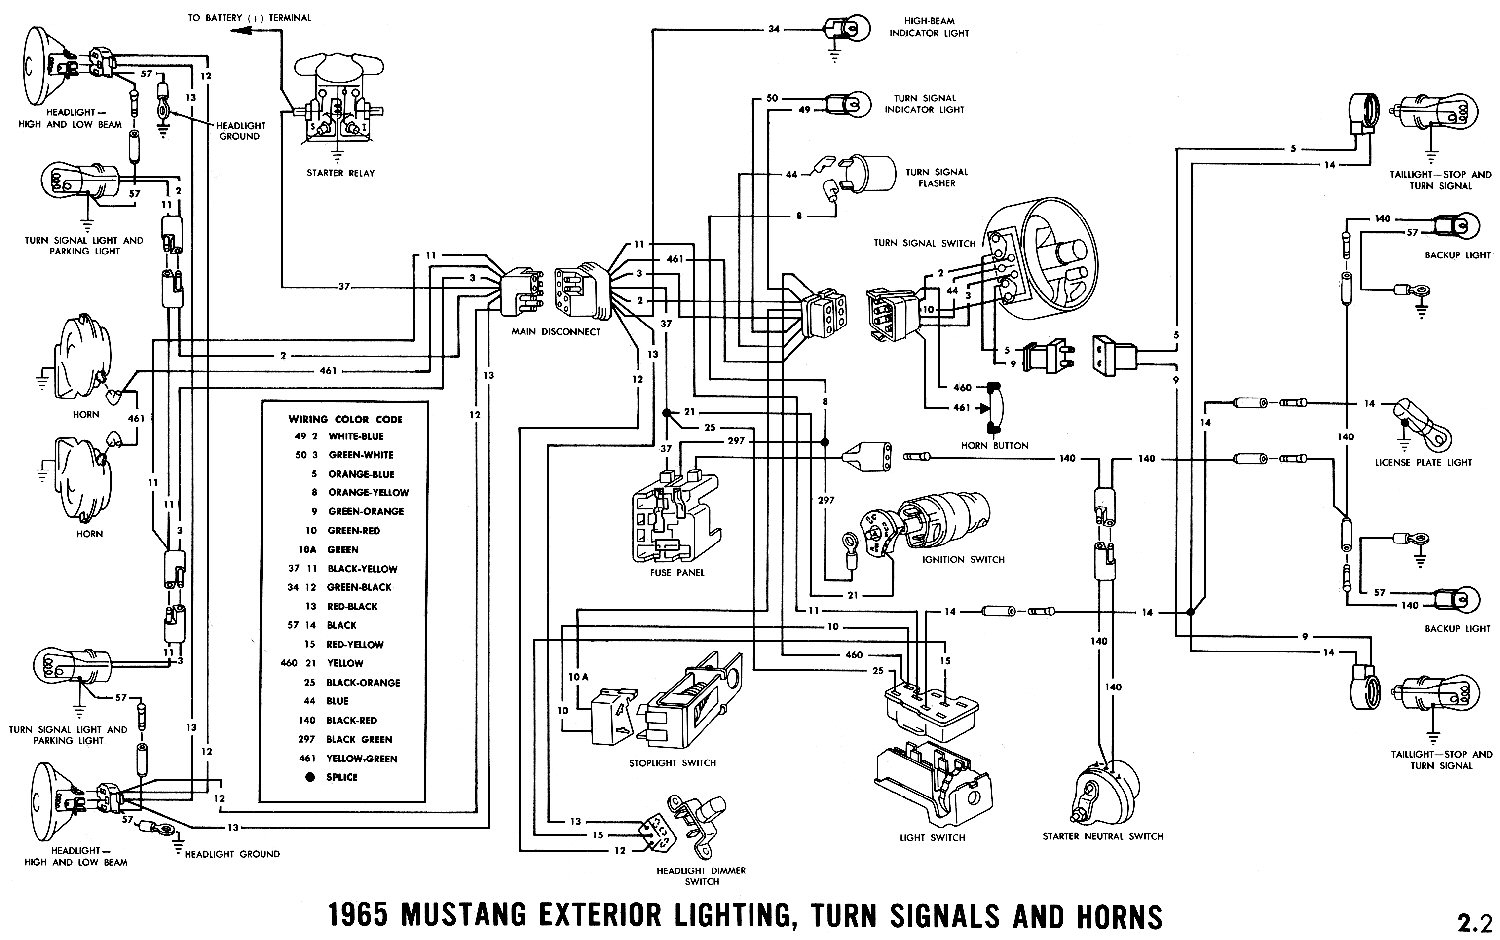 1966 Mustang Interior Wiring Harness Diagram - Wiring Diagrams - 1966 Mustang Wiring Diagram